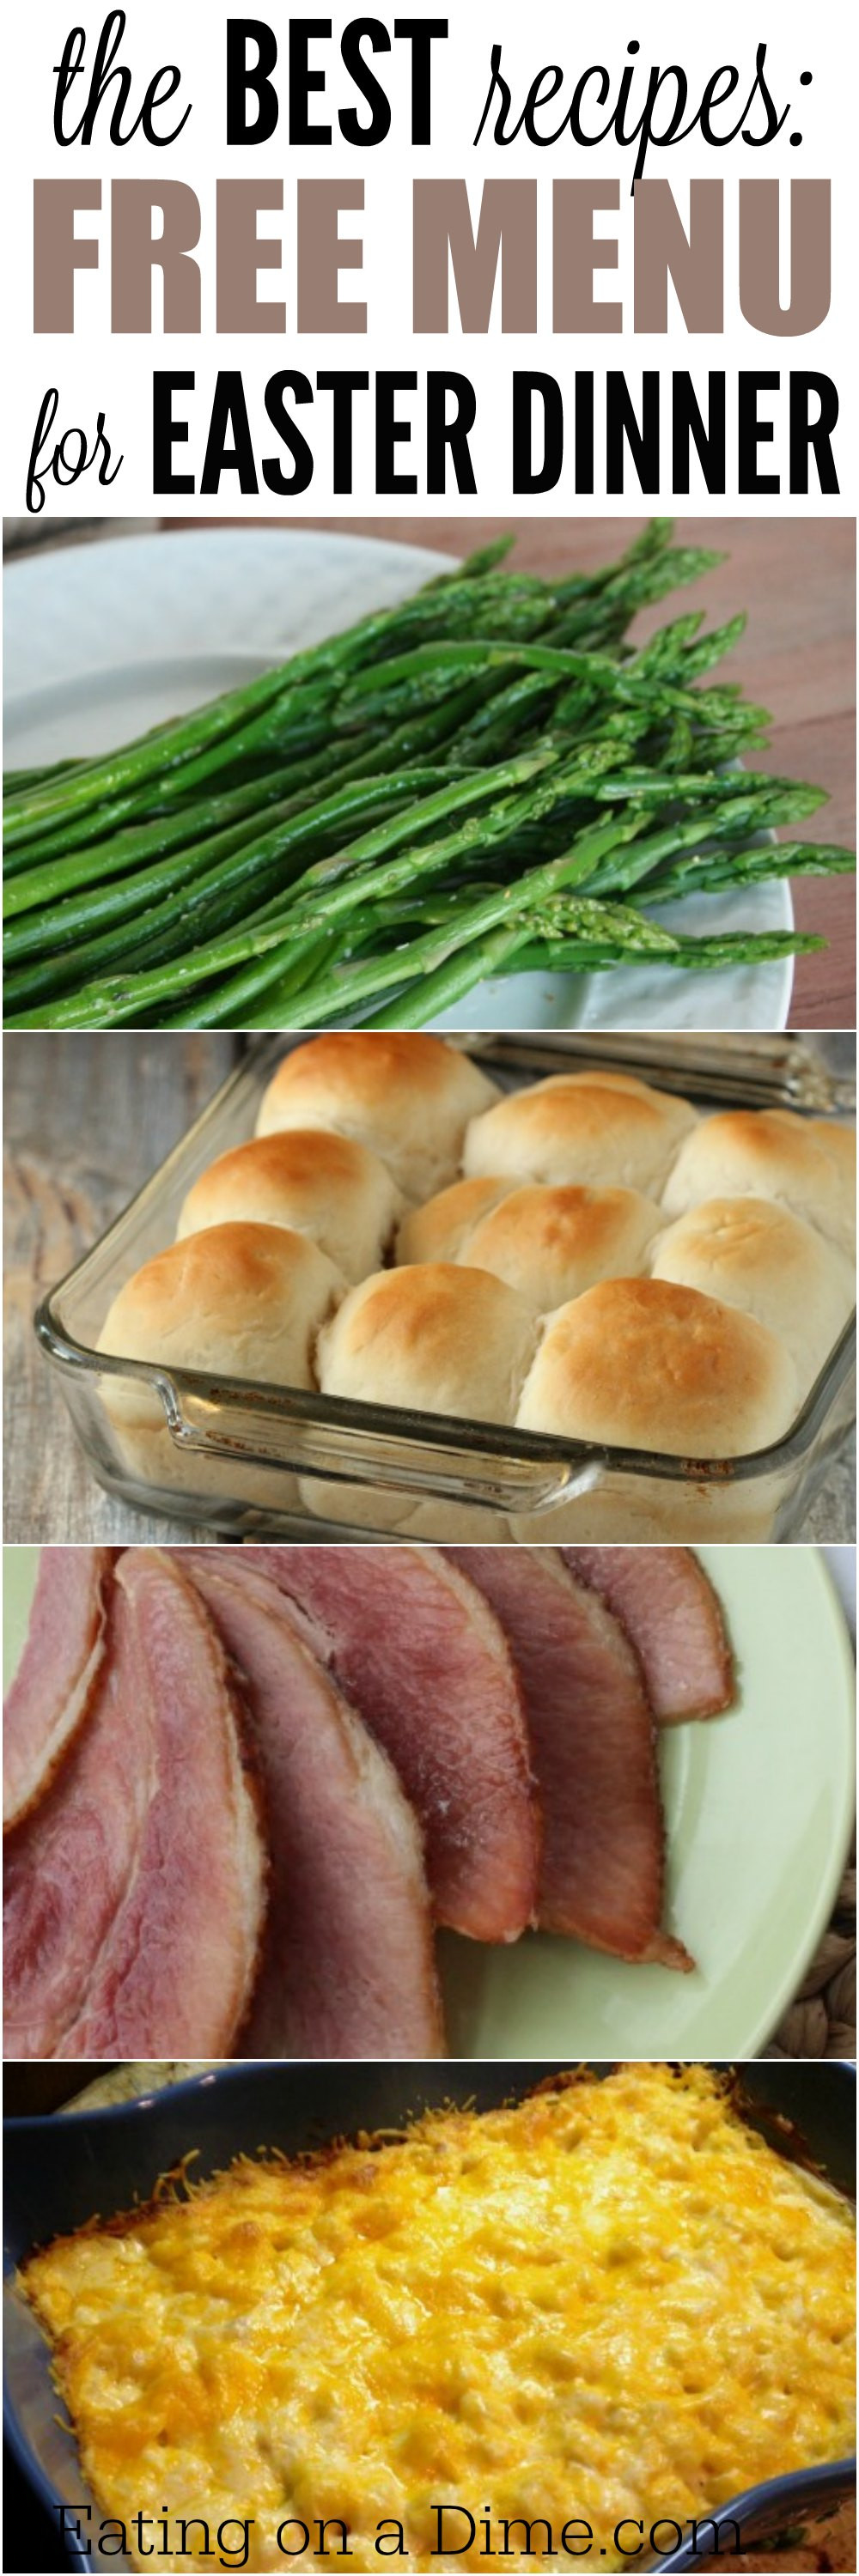 Best Easter Dinner Menu Ideas  Easter Menu Ideas and Recipes The Best Easter Dinner recipes